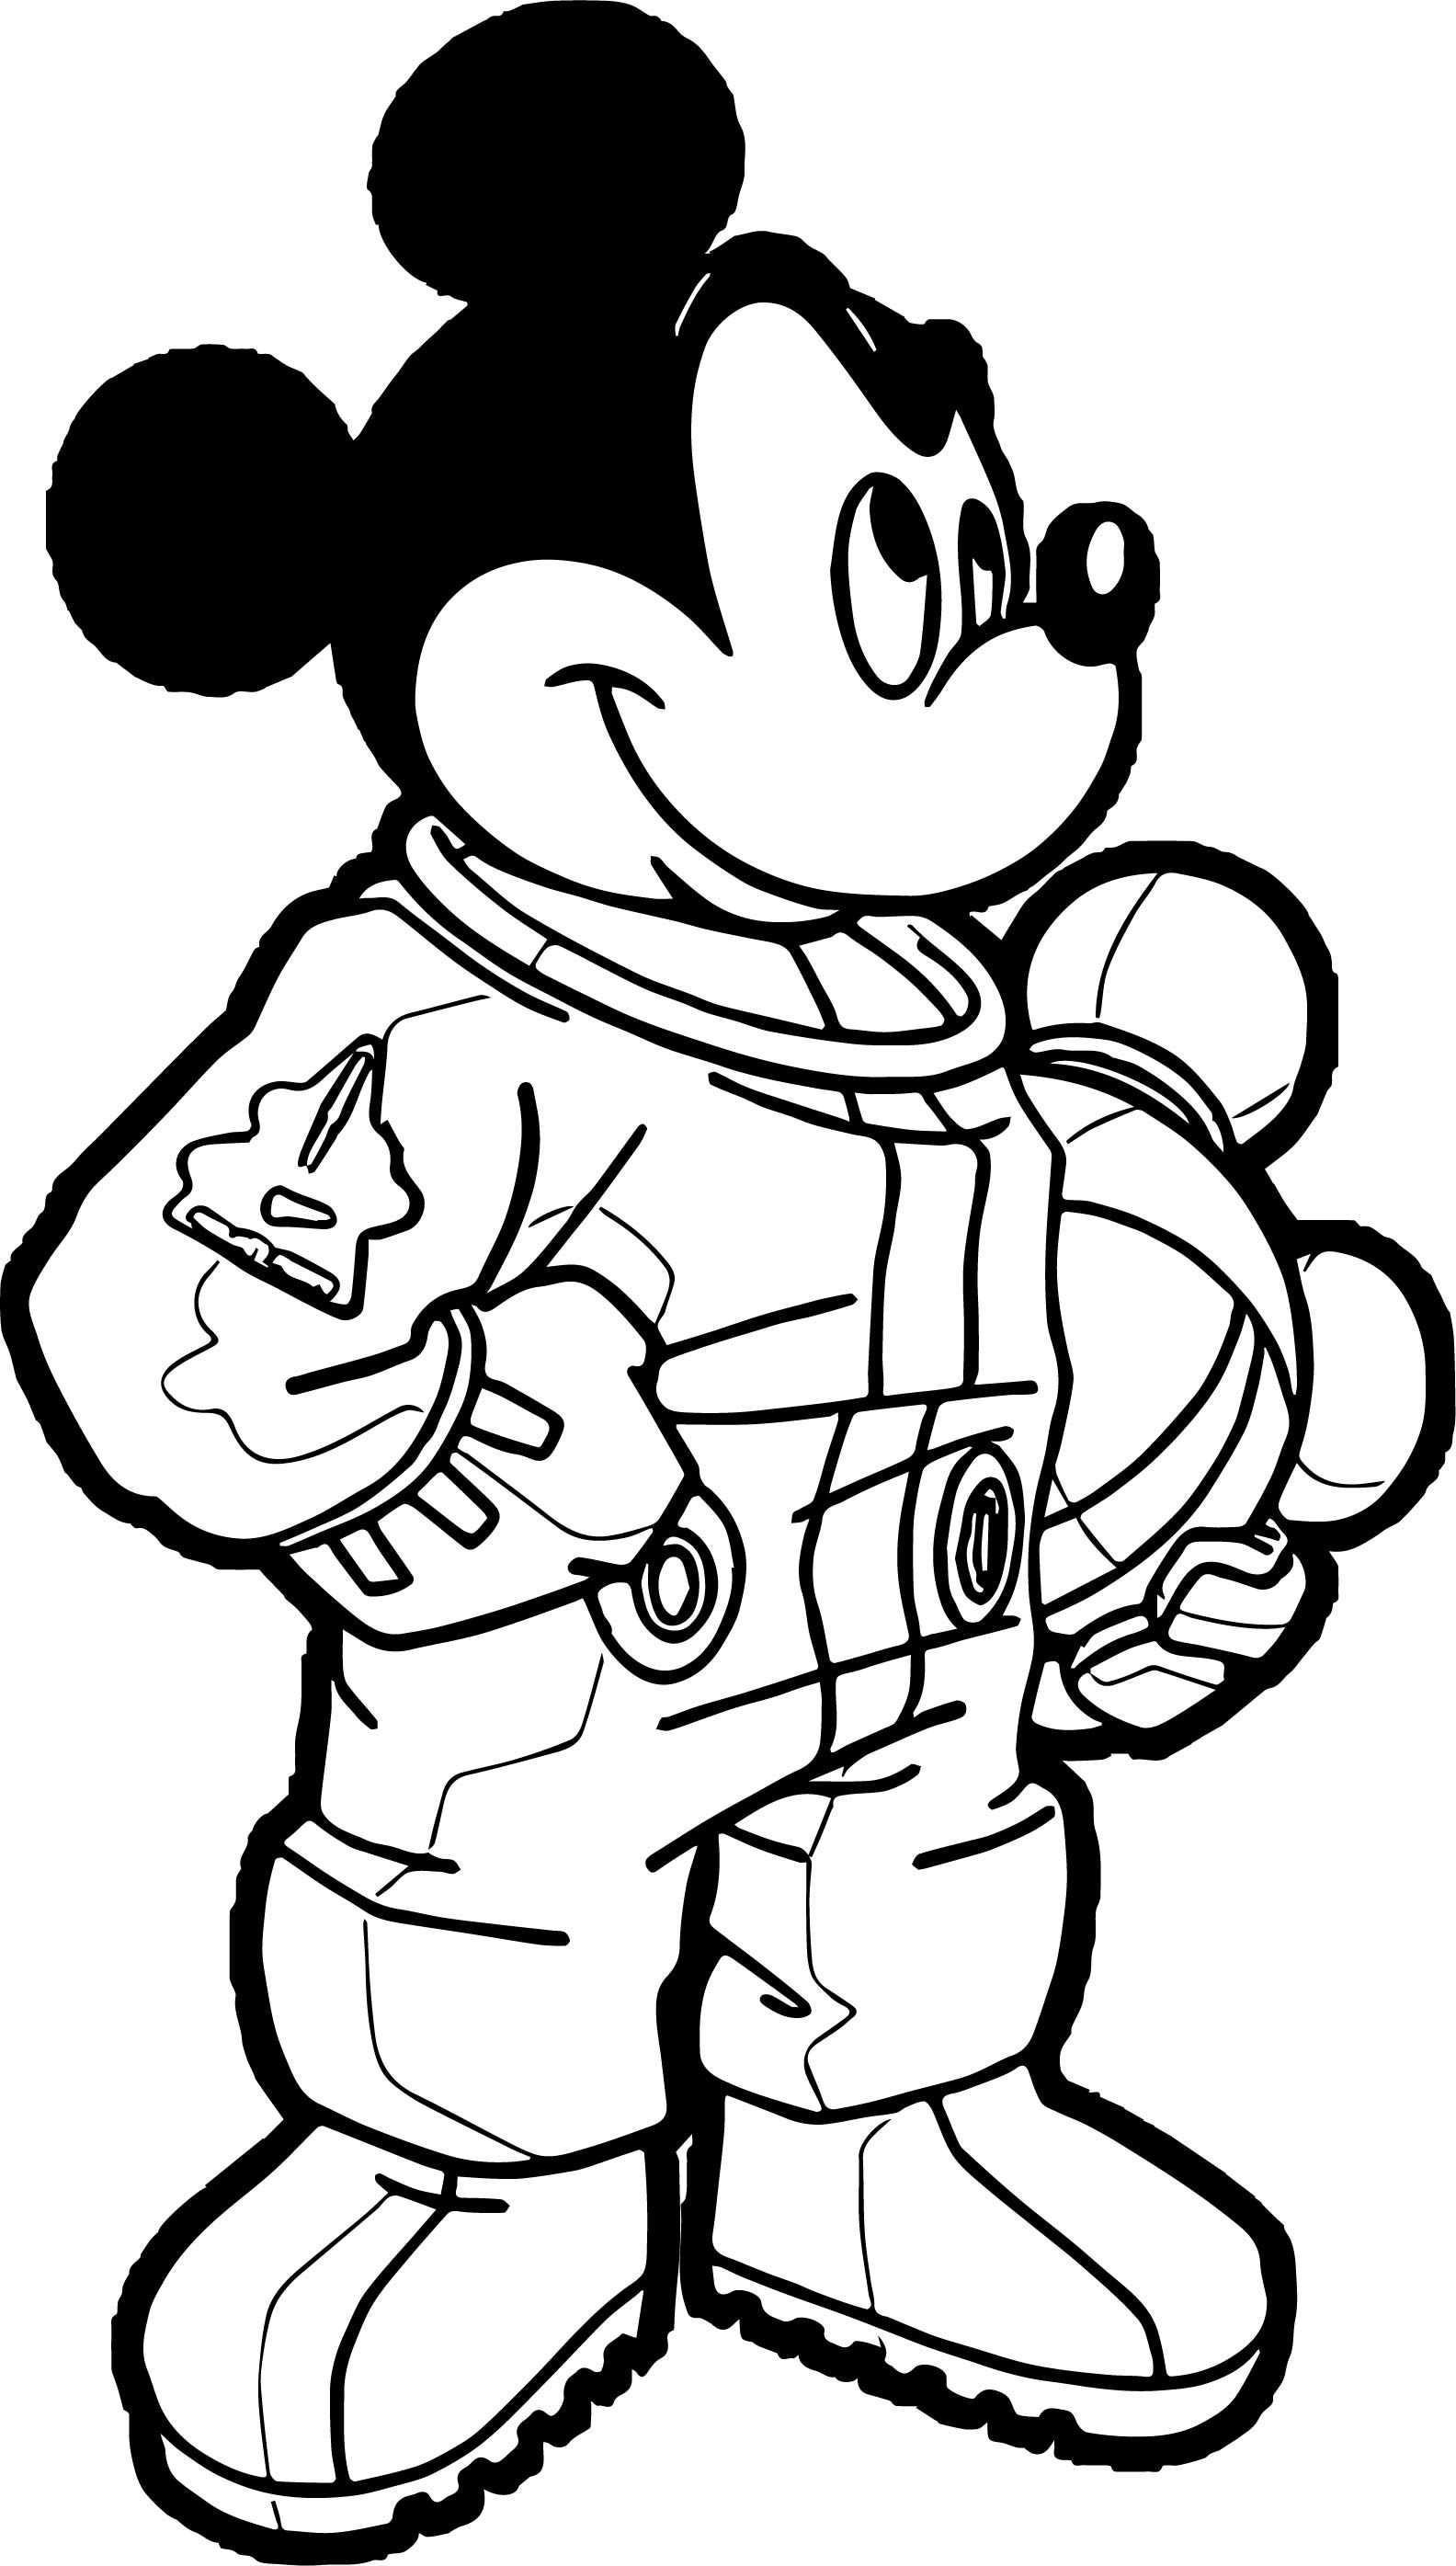 awesome Astronaut Mickey Mouse Coloring Page.